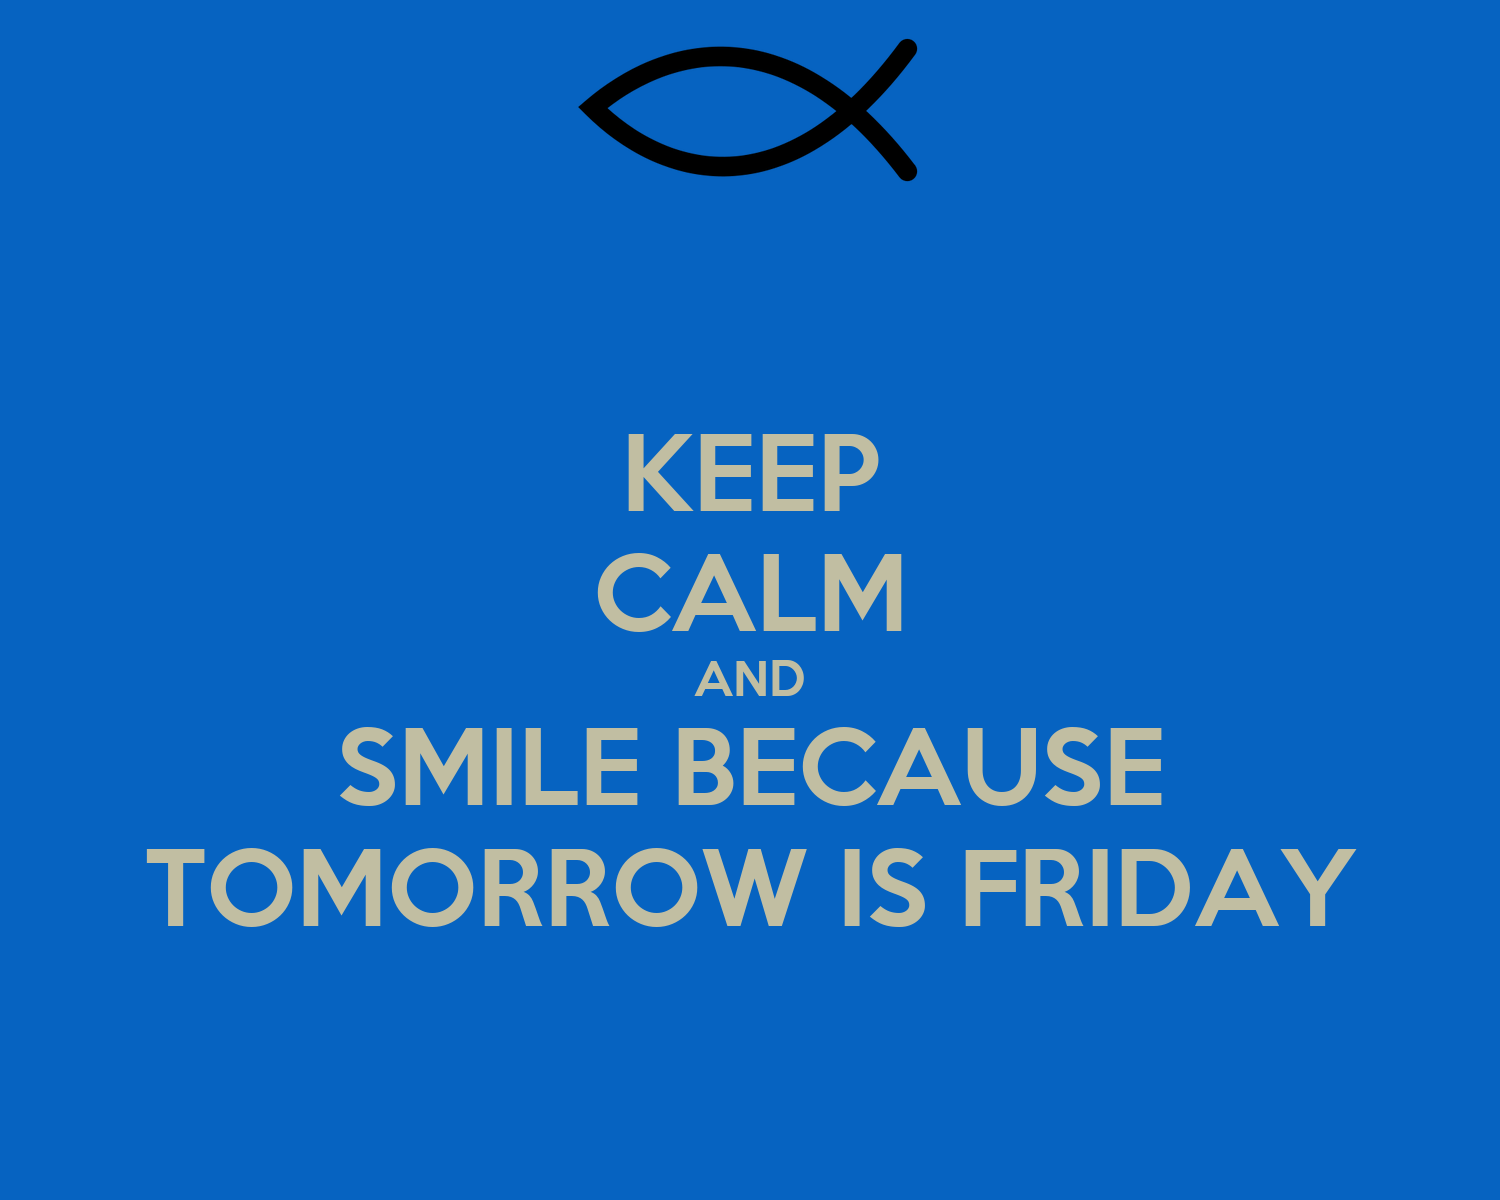 KEEP CALM AND SMILE BECAUSE TOMORROW IS FRIDAY Poster